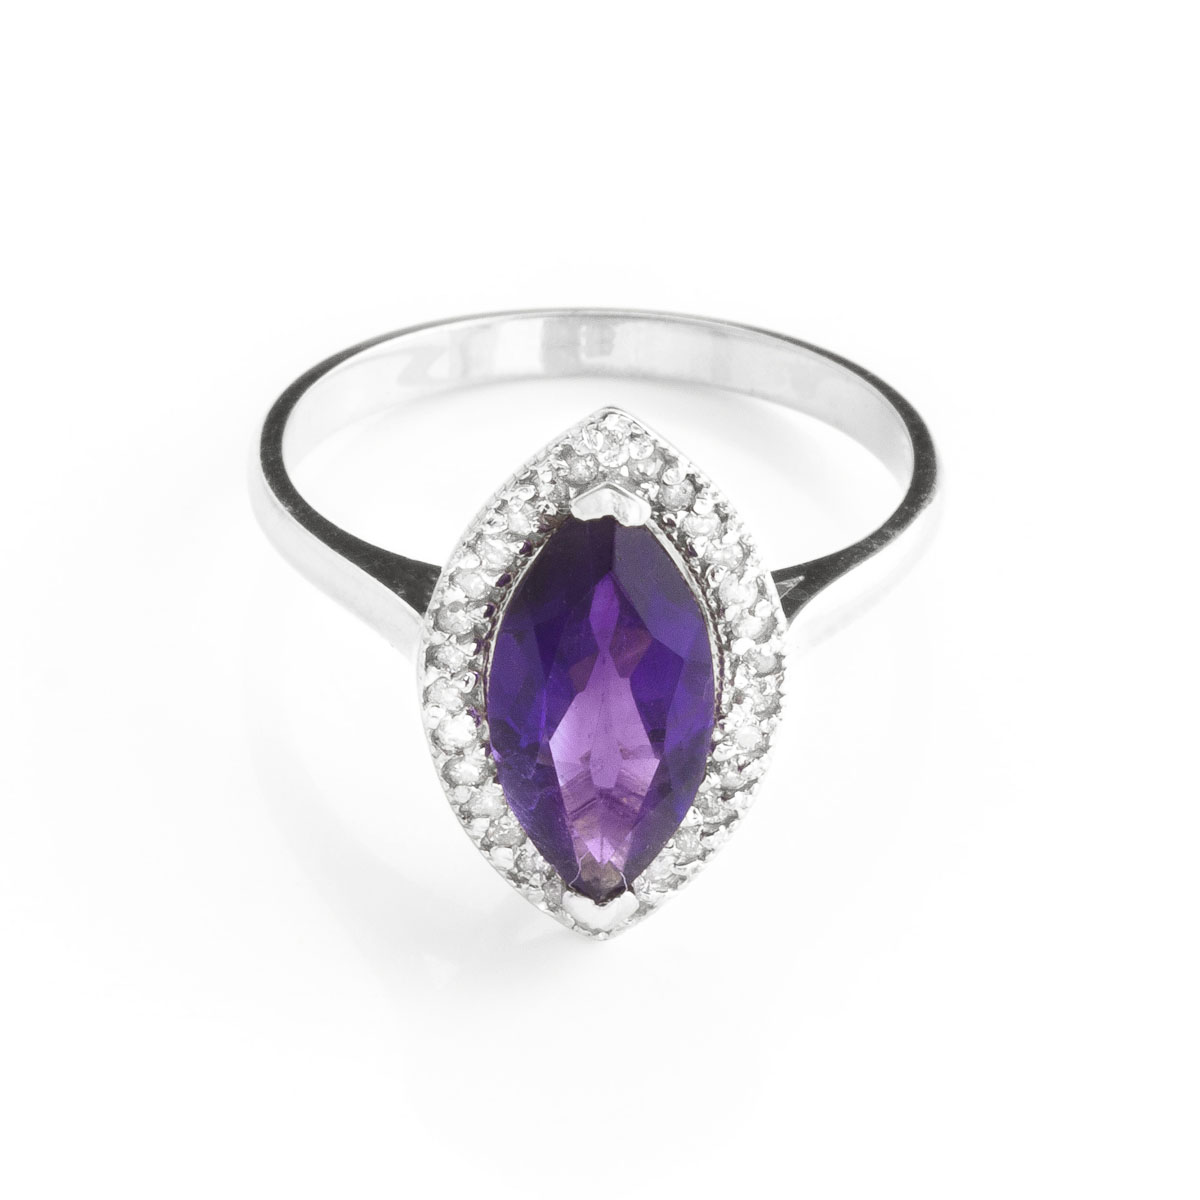 Amethyst Halo Ring 1.8 ctw in 18ct White Gold